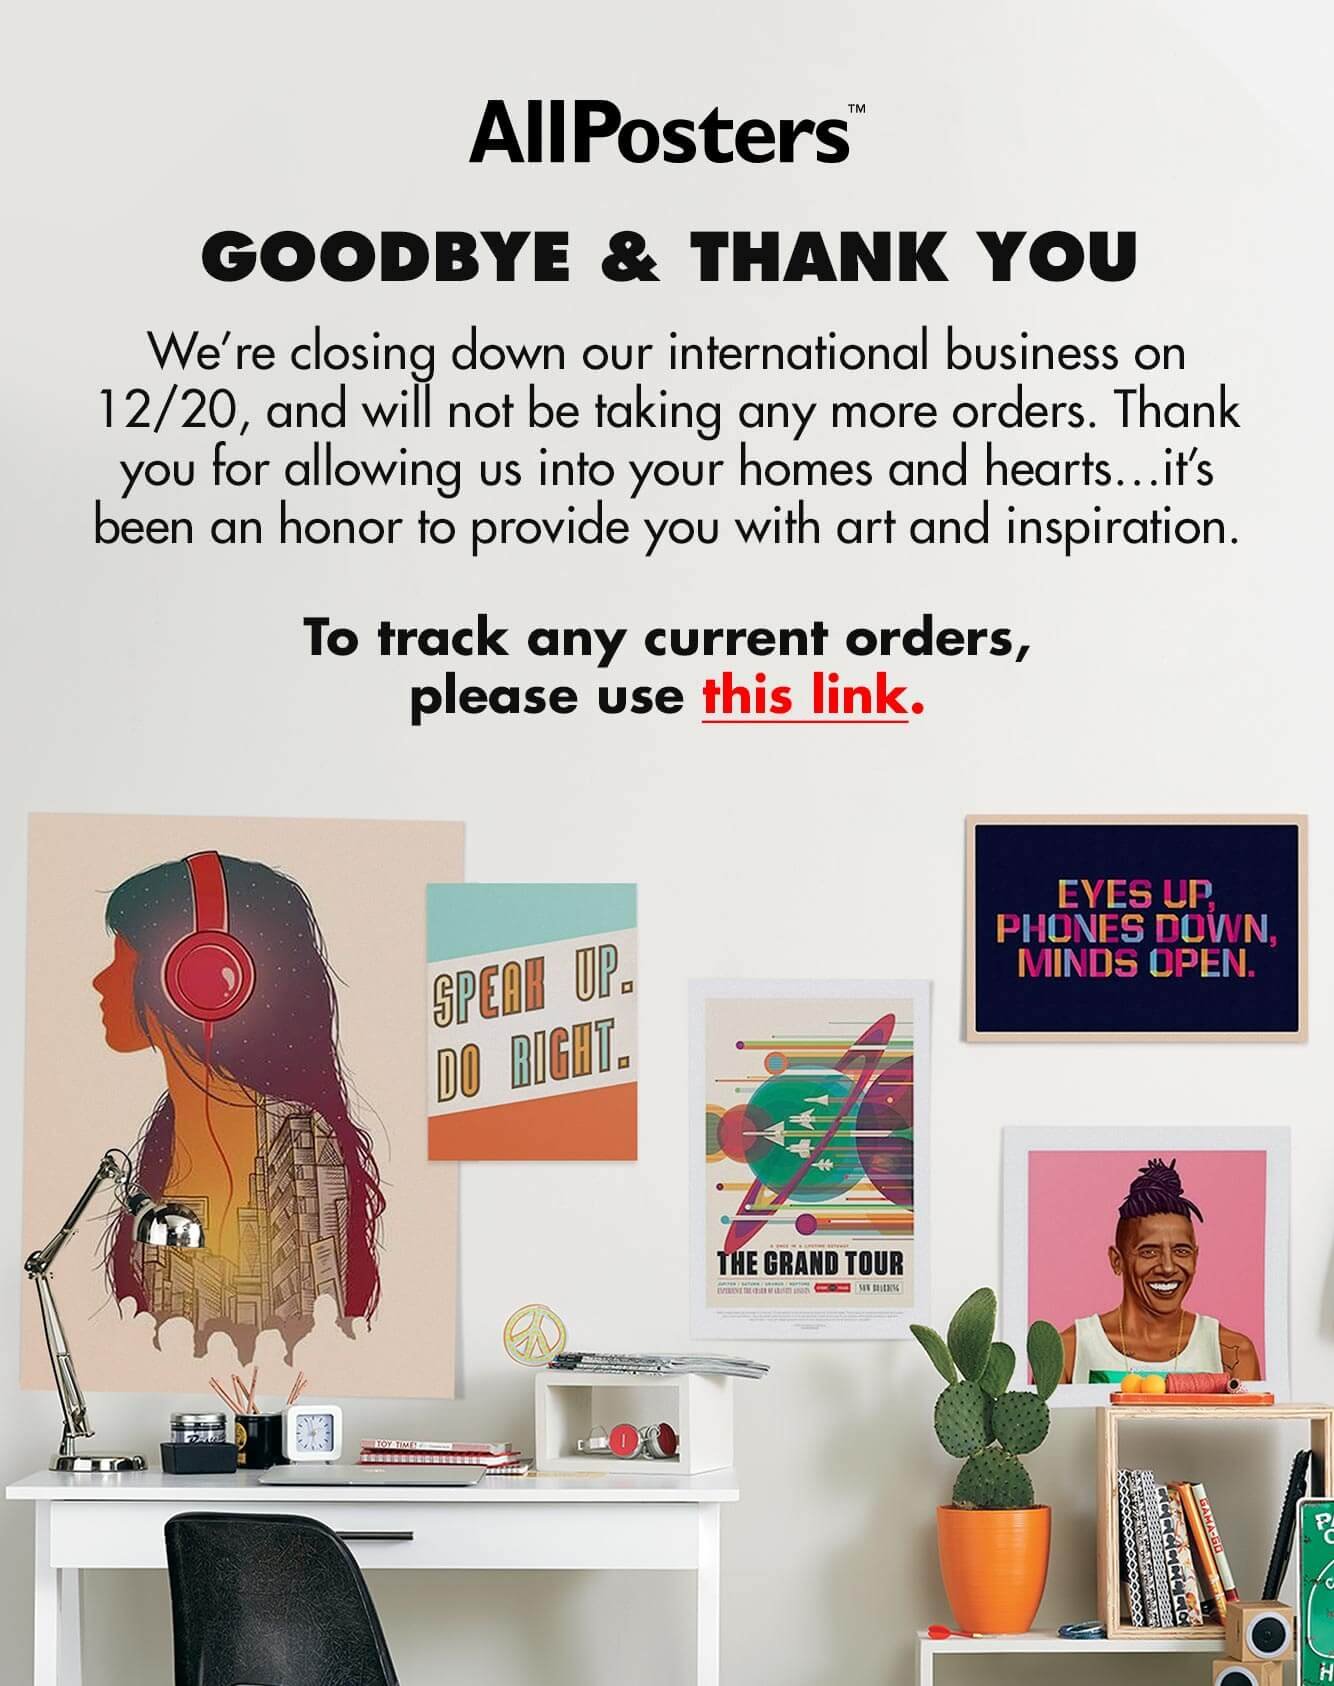 We're closing down our international business, and will not be taking any more orders. Thank you for allowing us into your homes and hearts…it's been an honor to provide you with art and inspiration. To track any current orders, please use this link.